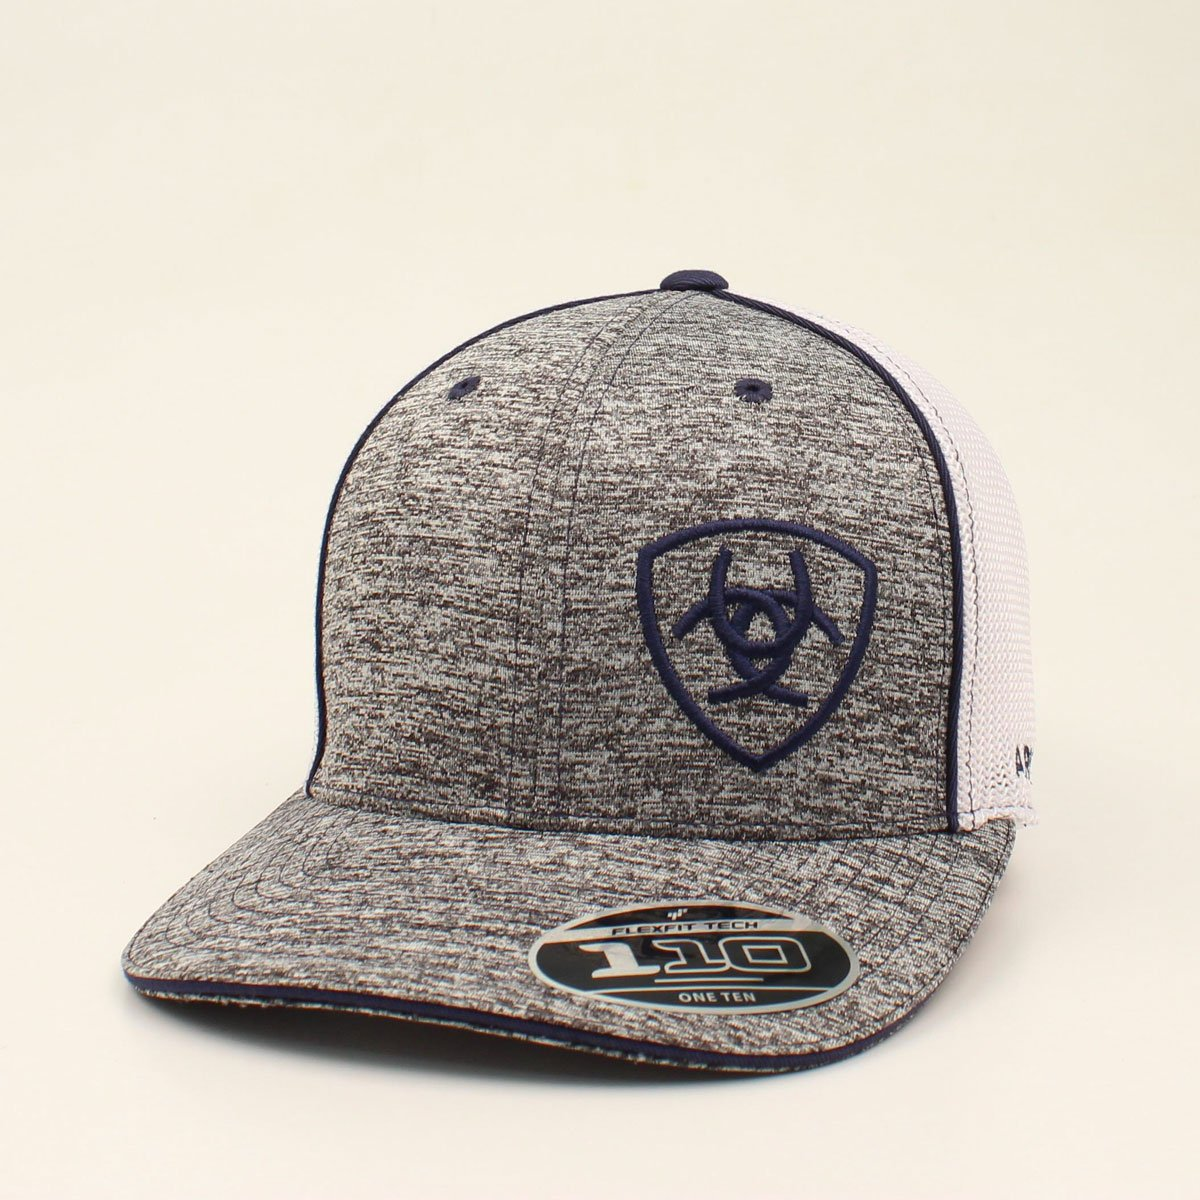 Ariat Flexfit Navy Logo White Mesh Ballcap